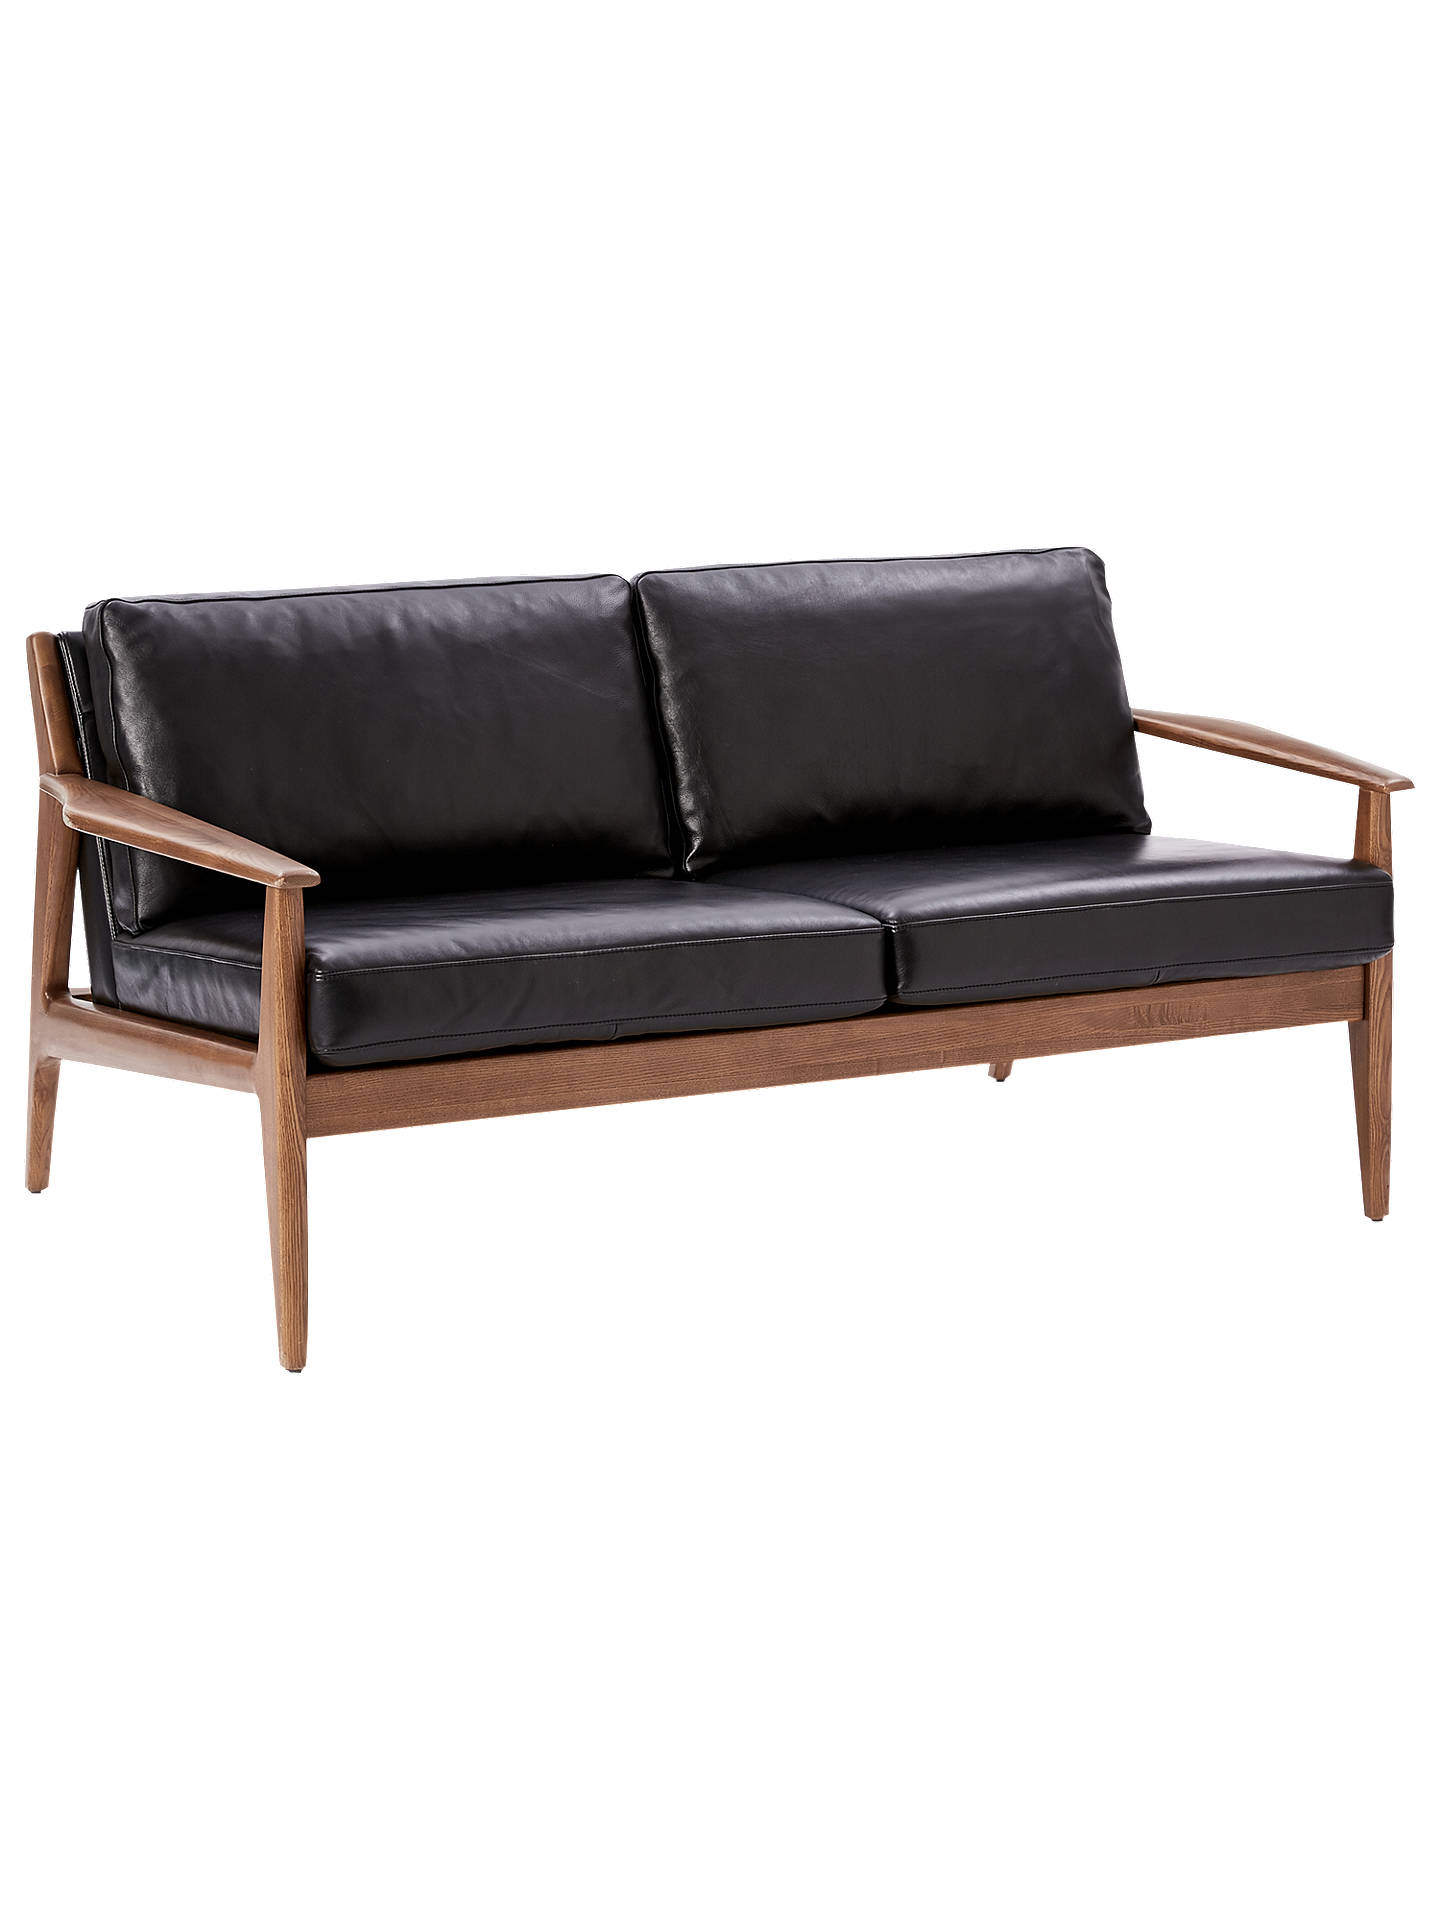 Astounding West Elm Mathias Leather Loveseat Black At John Lewis Unemploymentrelief Wooden Chair Designs For Living Room Unemploymentrelieforg